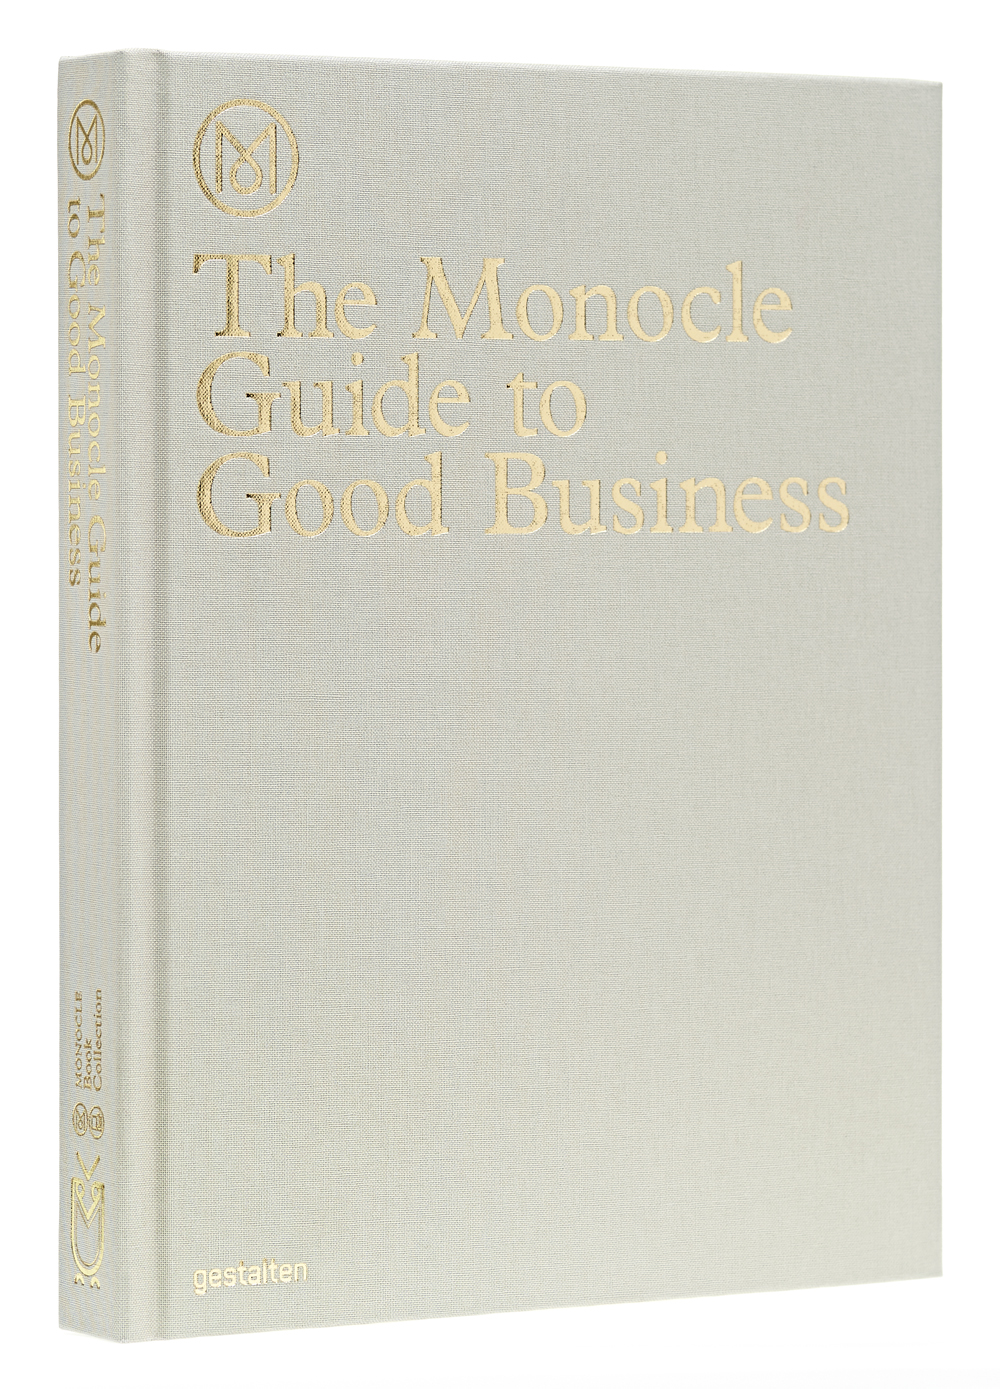 say hi to_ The Monocle Guide to Good Business